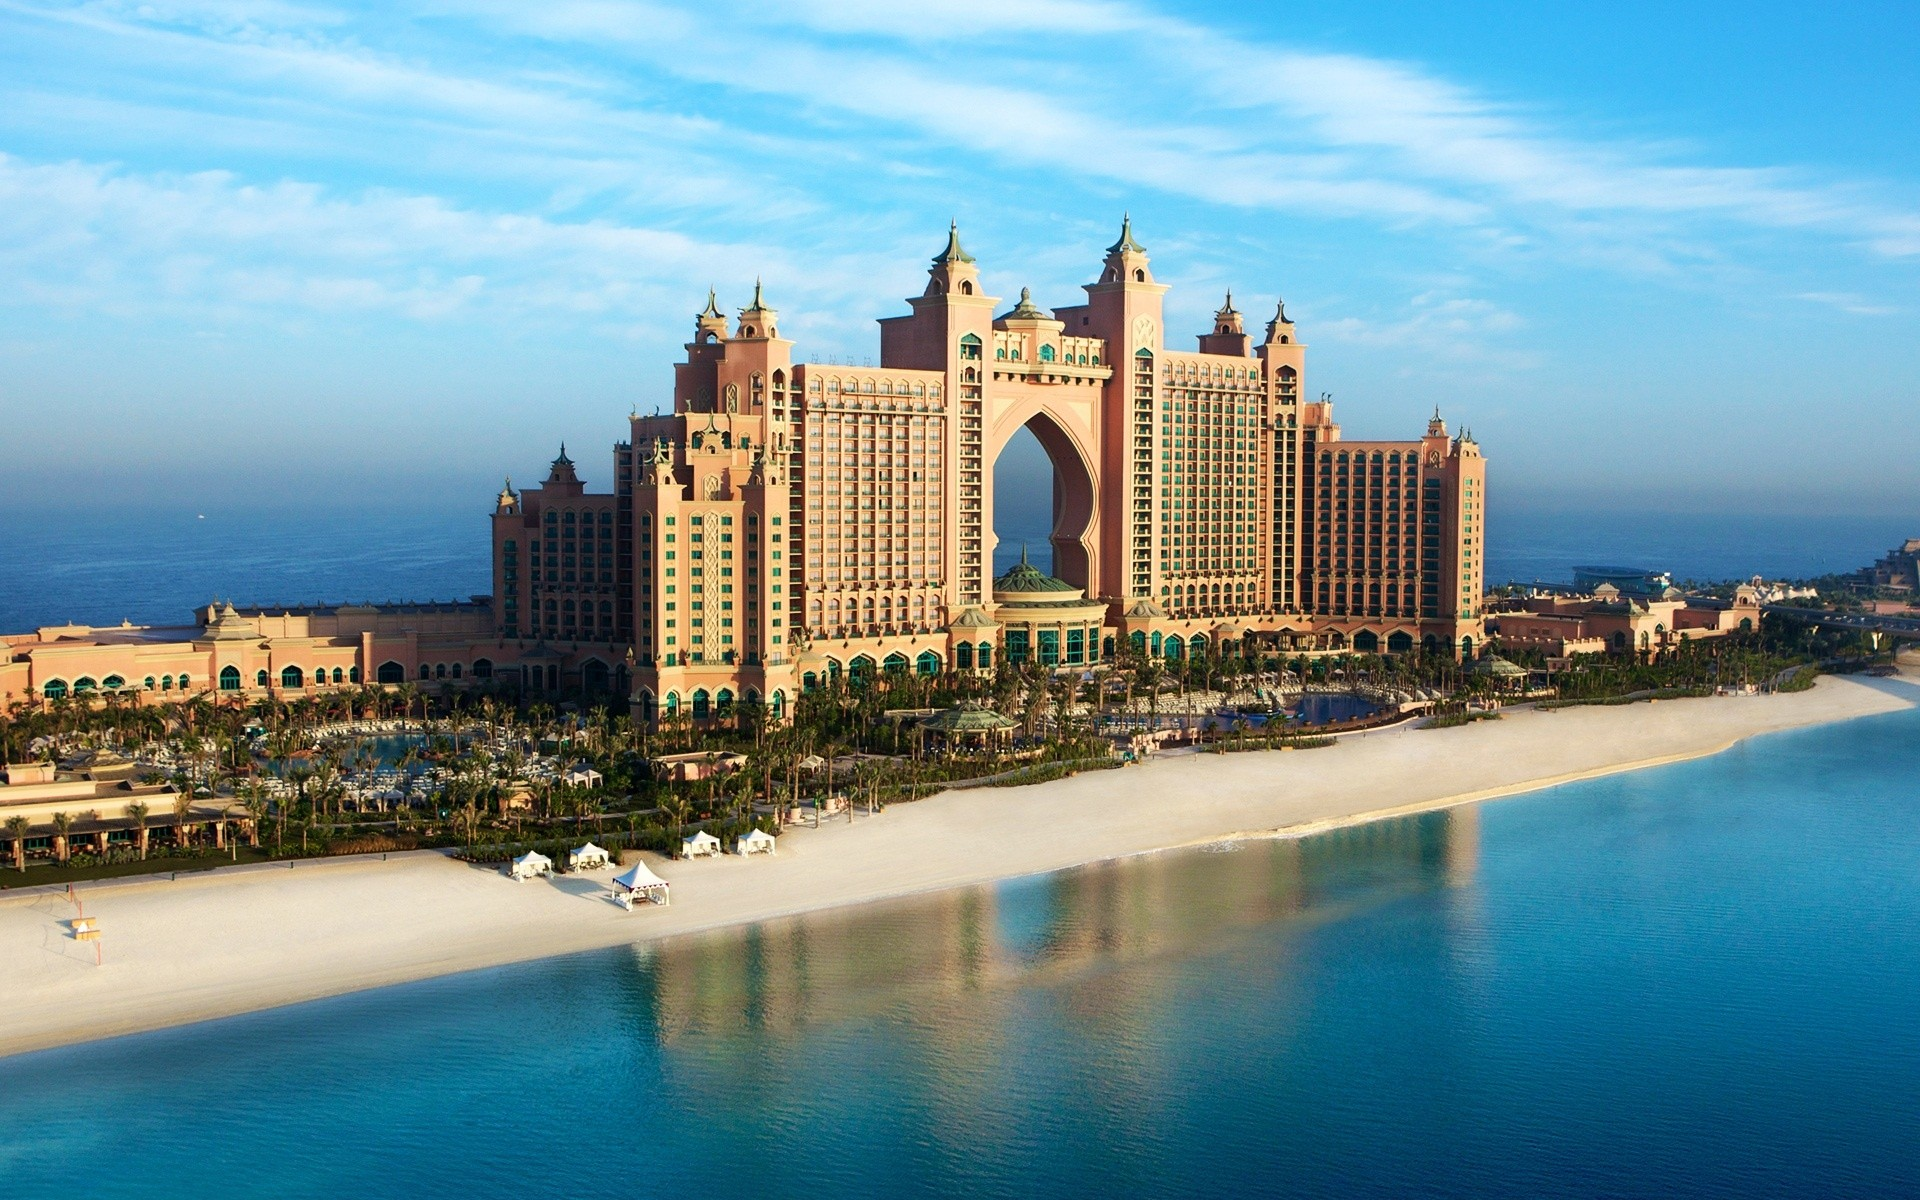 Photo Hotel Atlantis the palm in Dubai